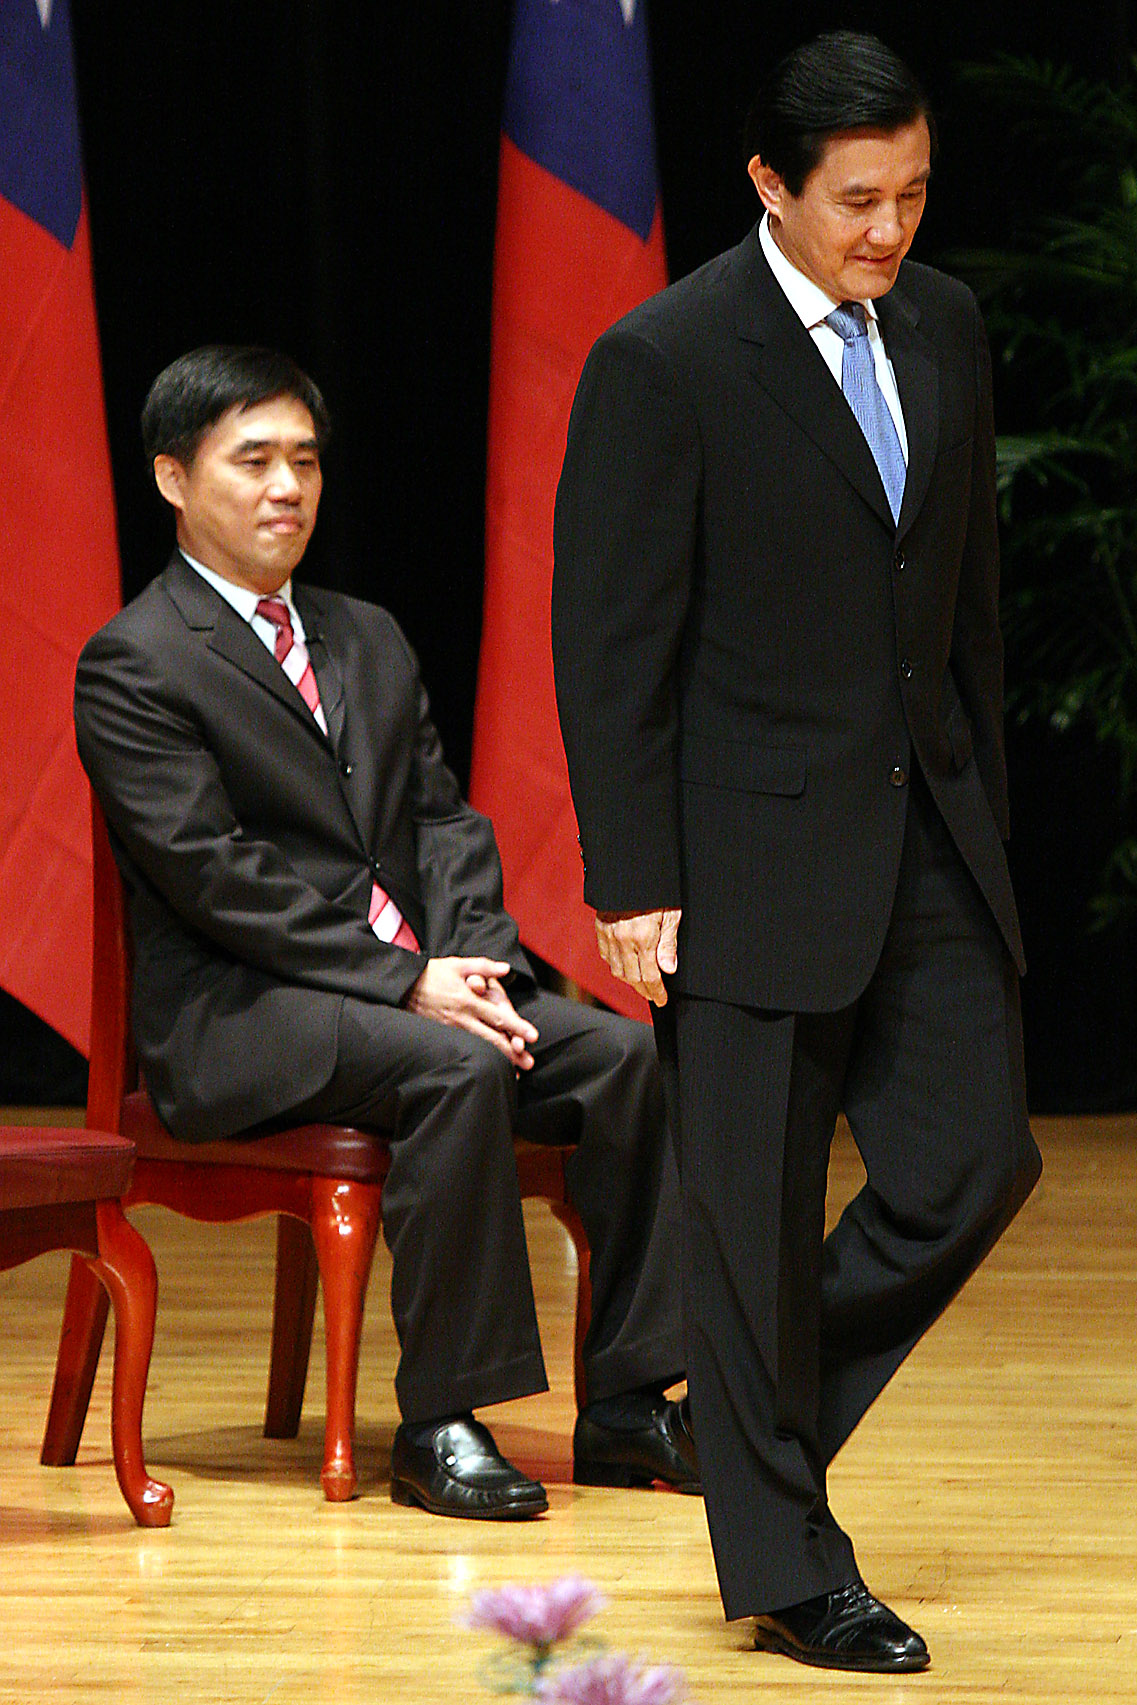 Former Taipei mayor Ma Ying-jeou, right, walks to the stage to make his farewell speech as the new mayor Hau Lung-bin looks on at the inauguration cer...